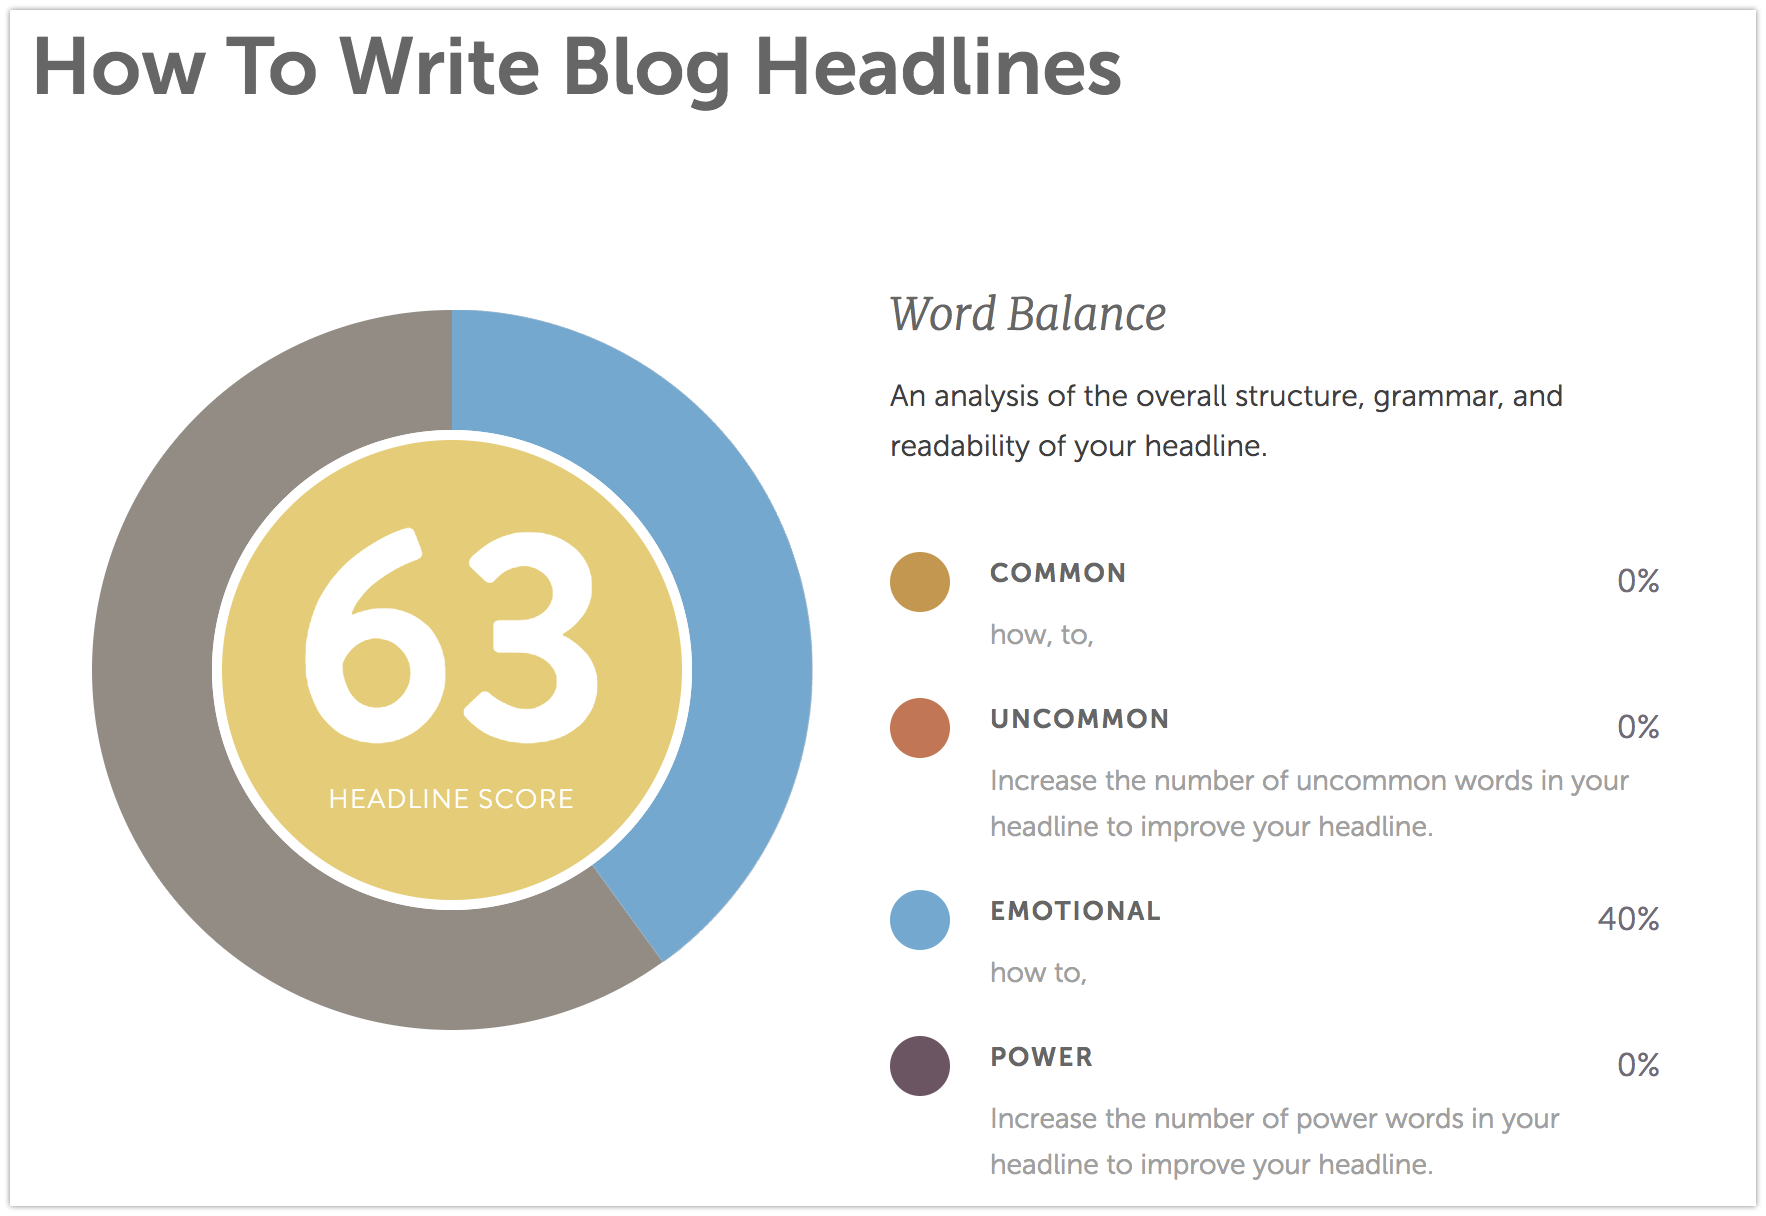 how to write blog headlines CoSchedule